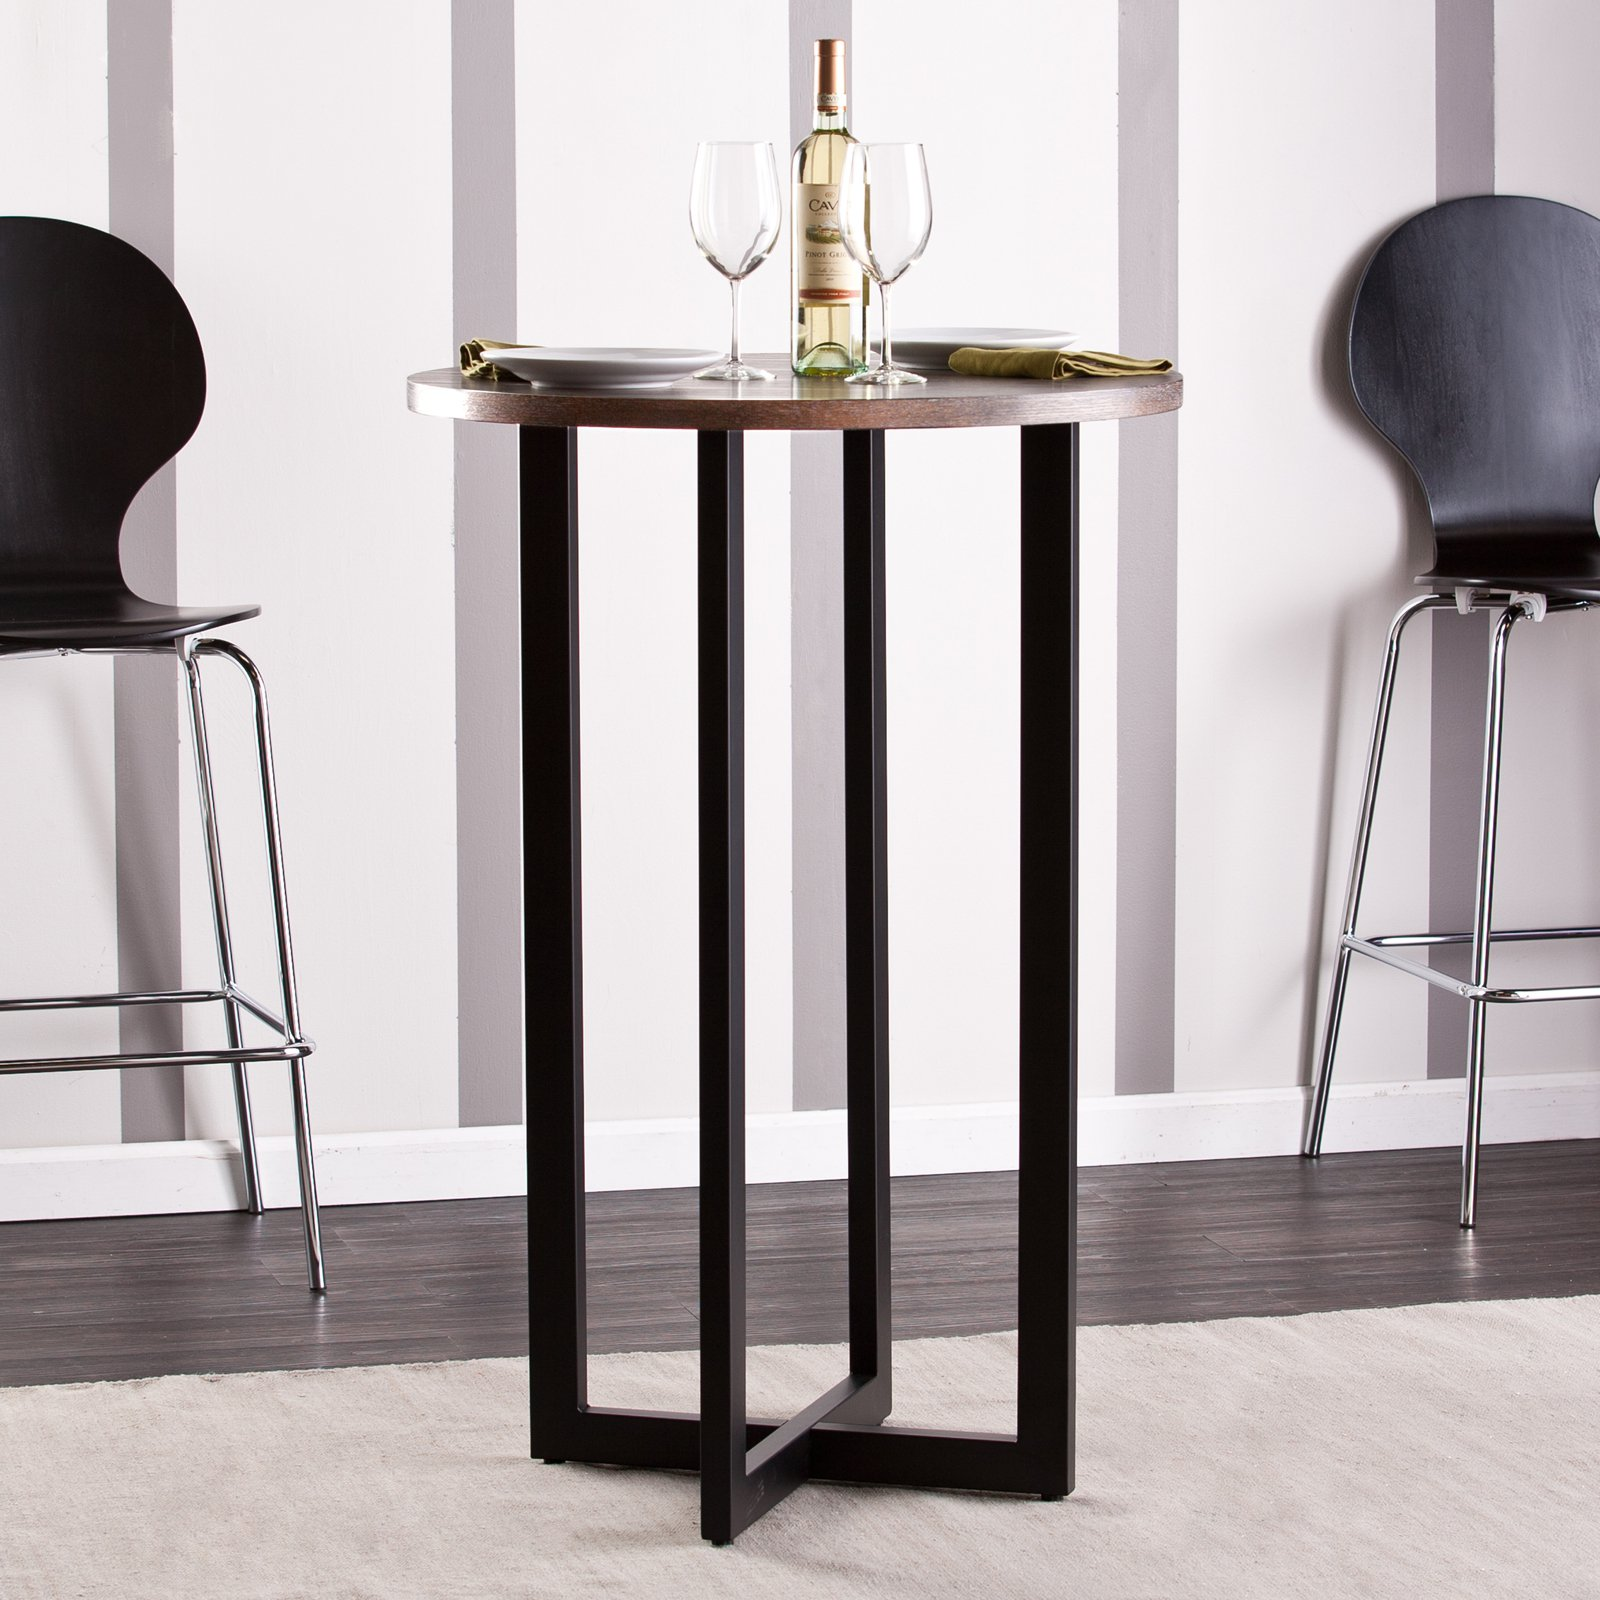 Southern Enterprises Danby Bistro Table, Burnt Oak/Black